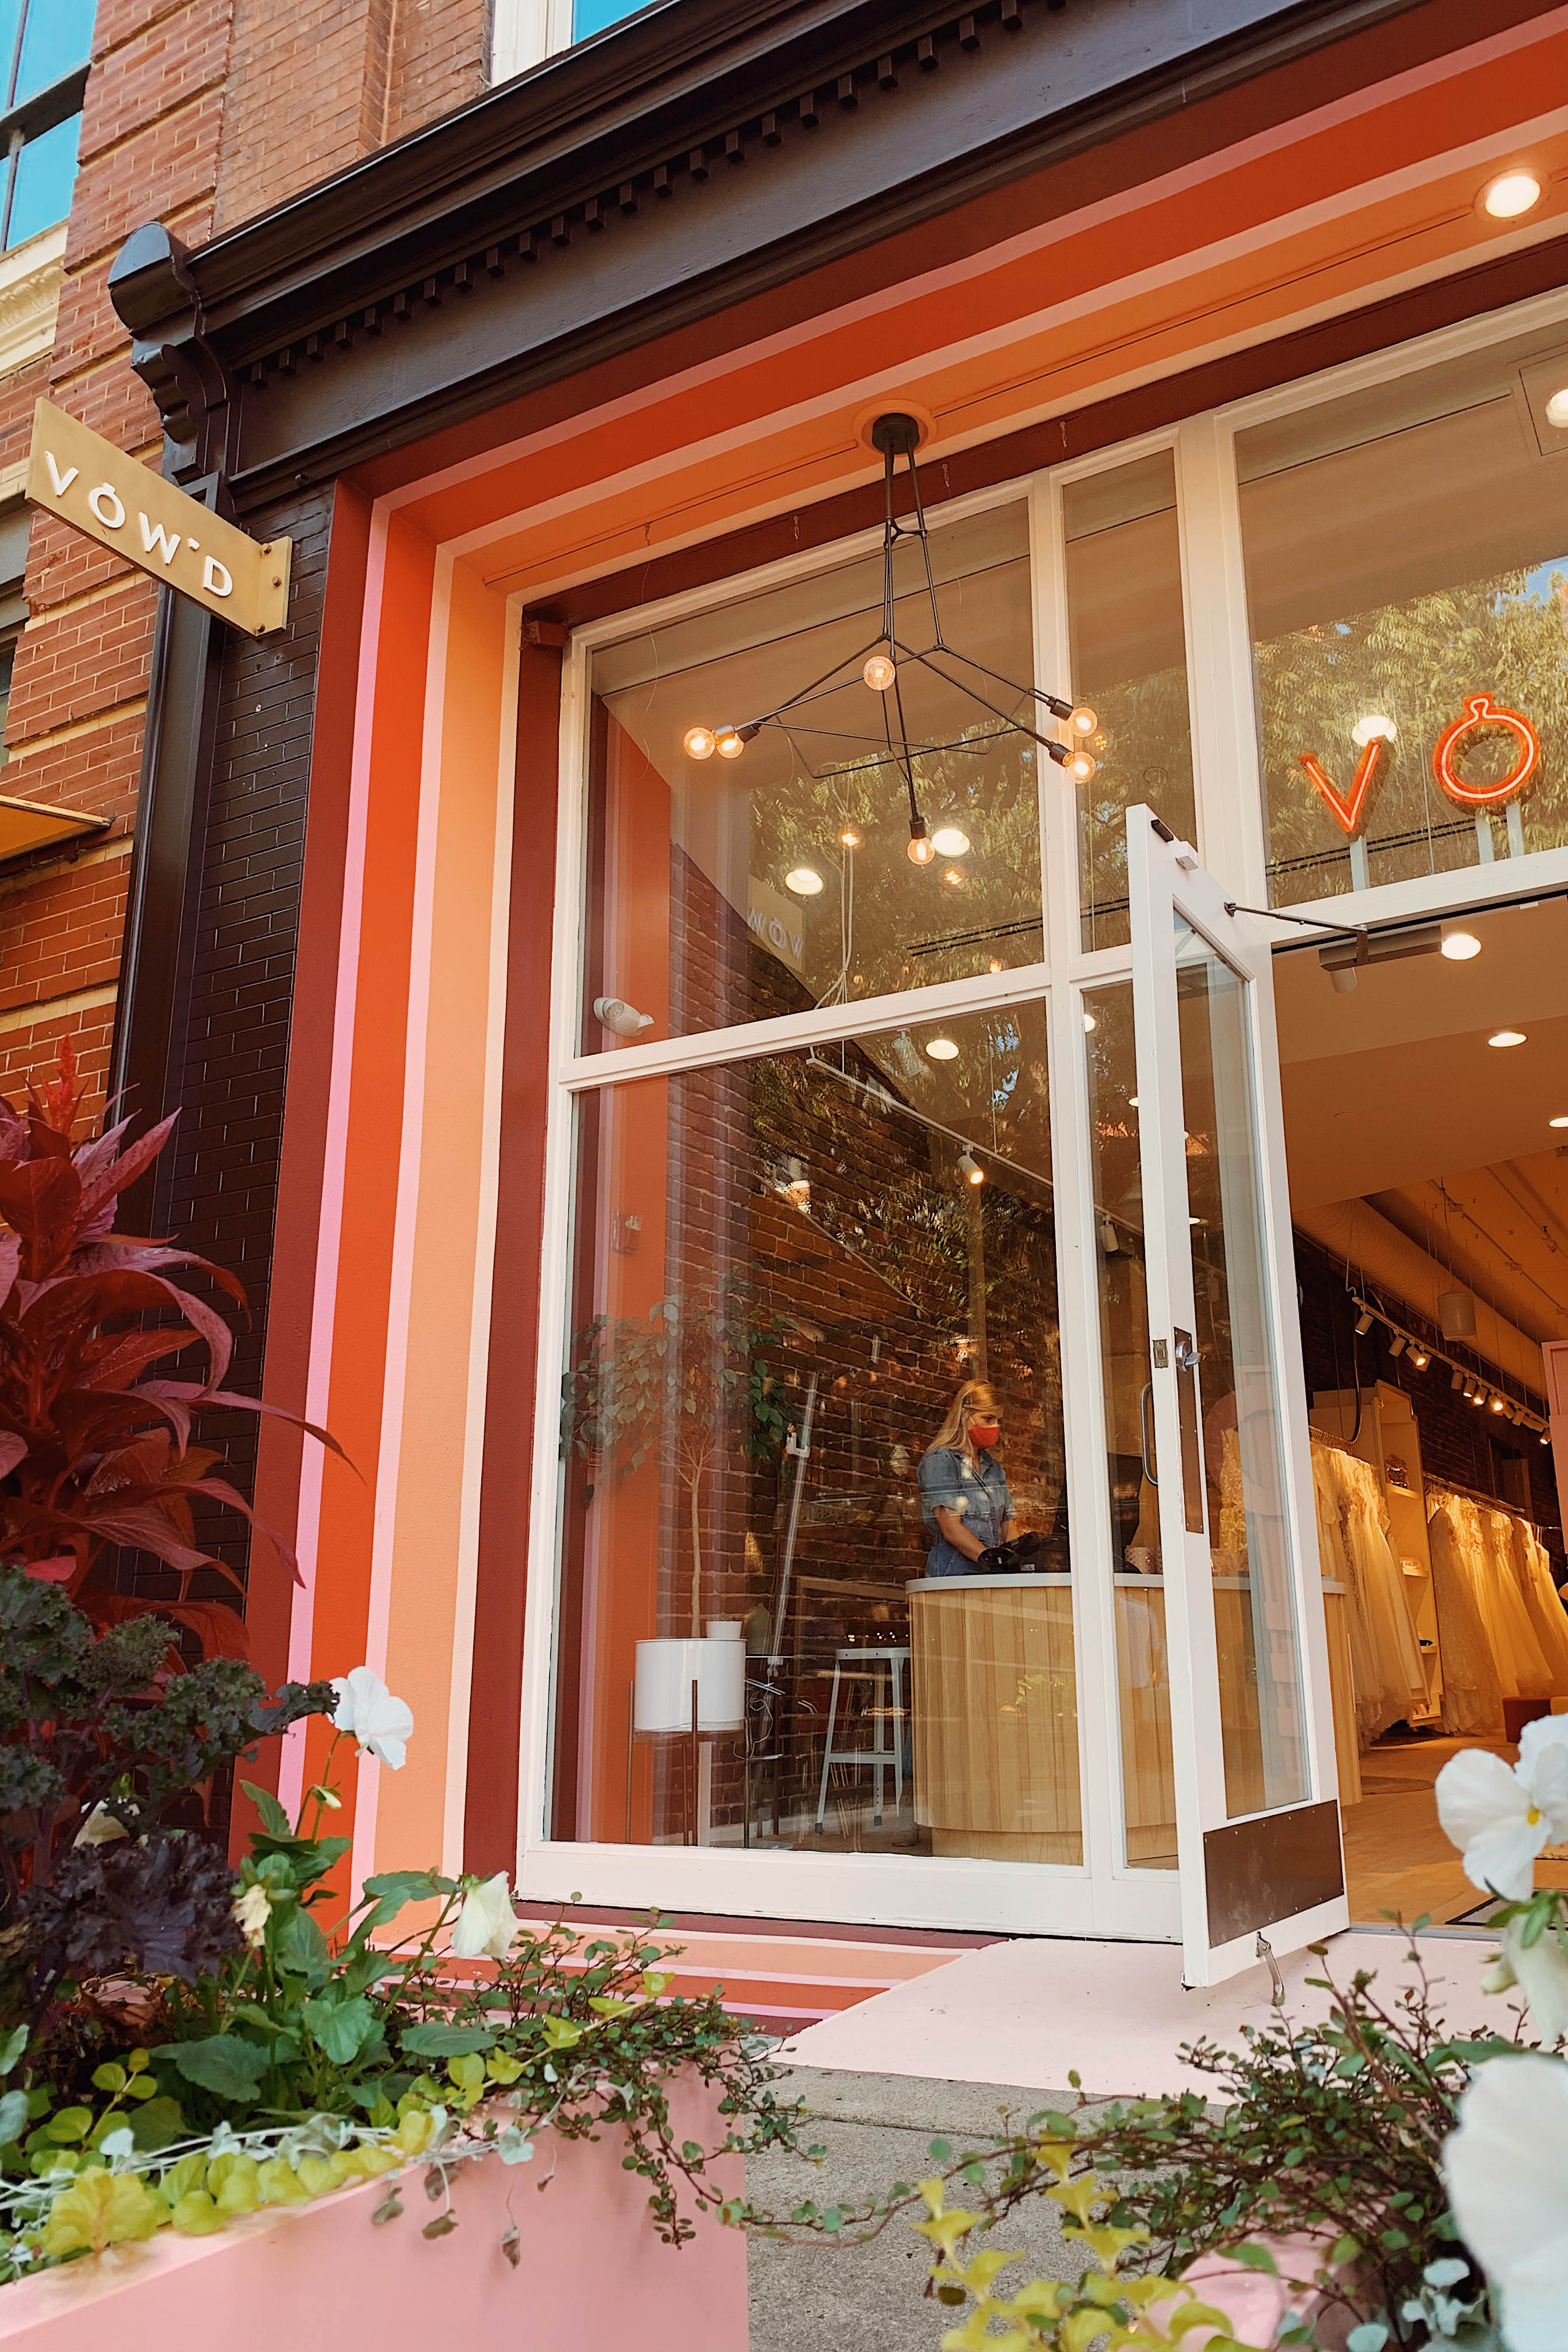 Vow'd Knoxville Store Storefront